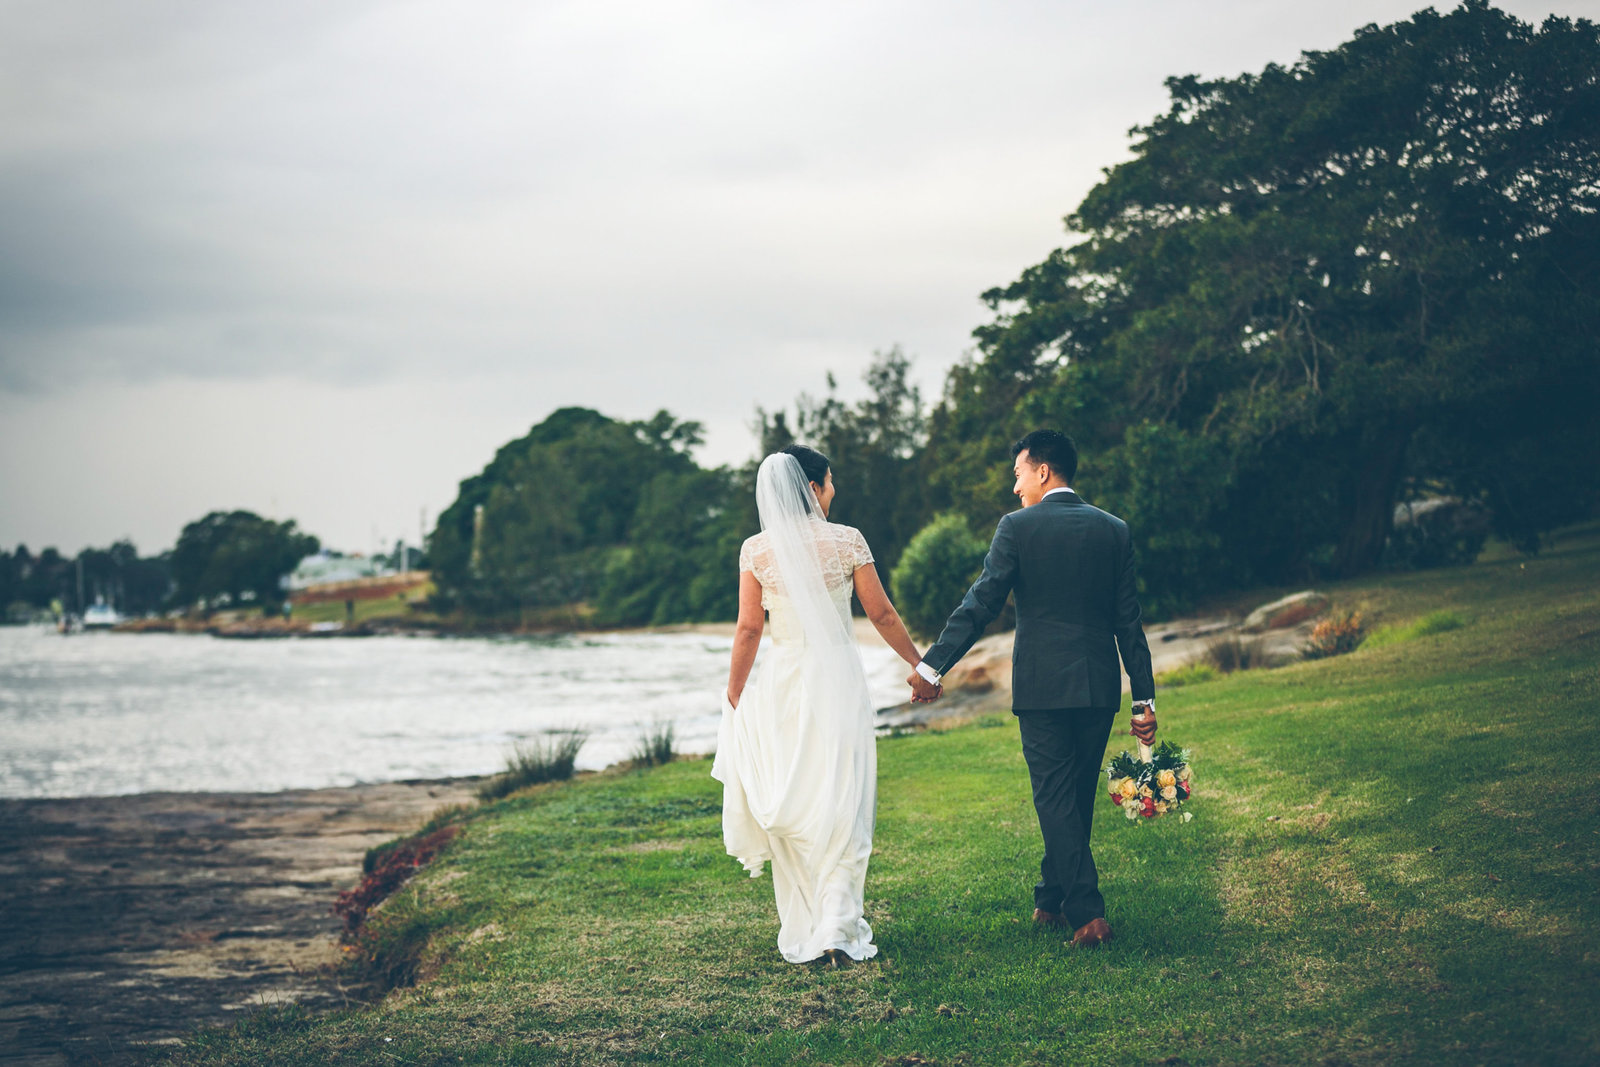 about-images-by-kevin-sydney-wedding-photographer-514